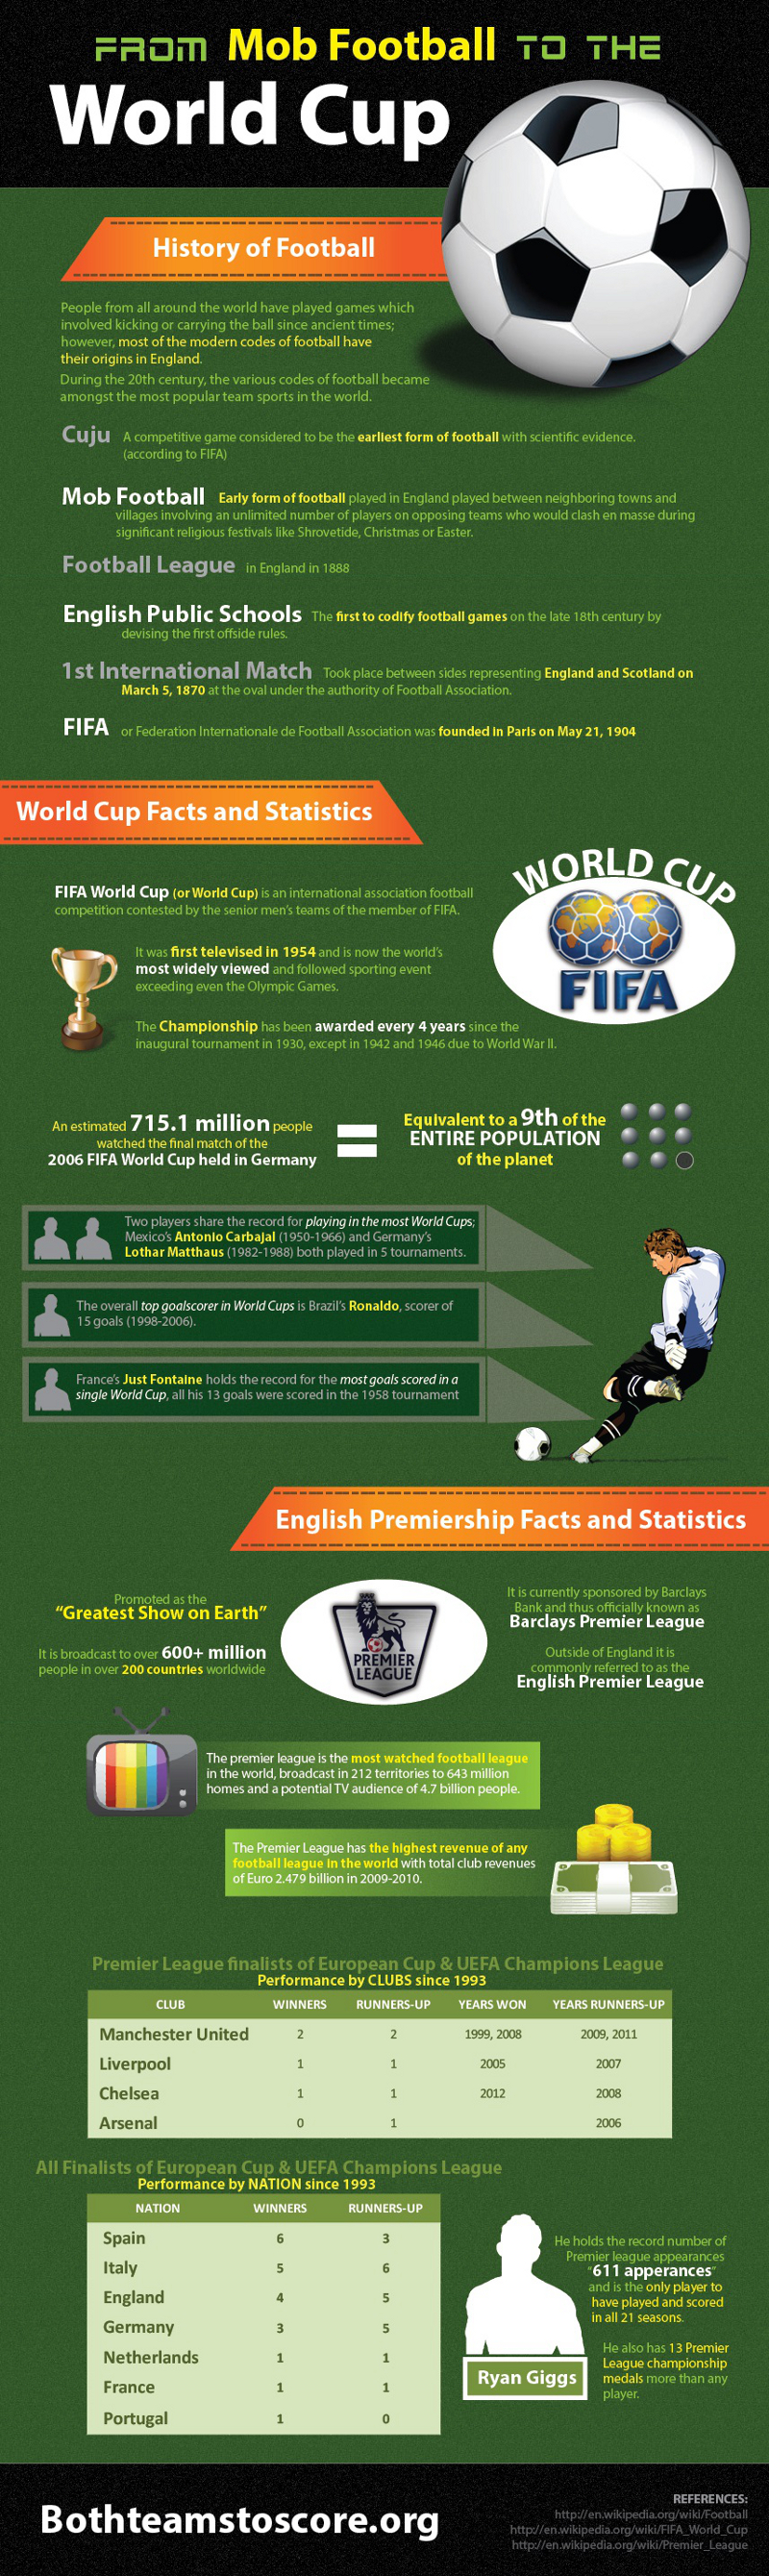 World Cup Facts and Statistics